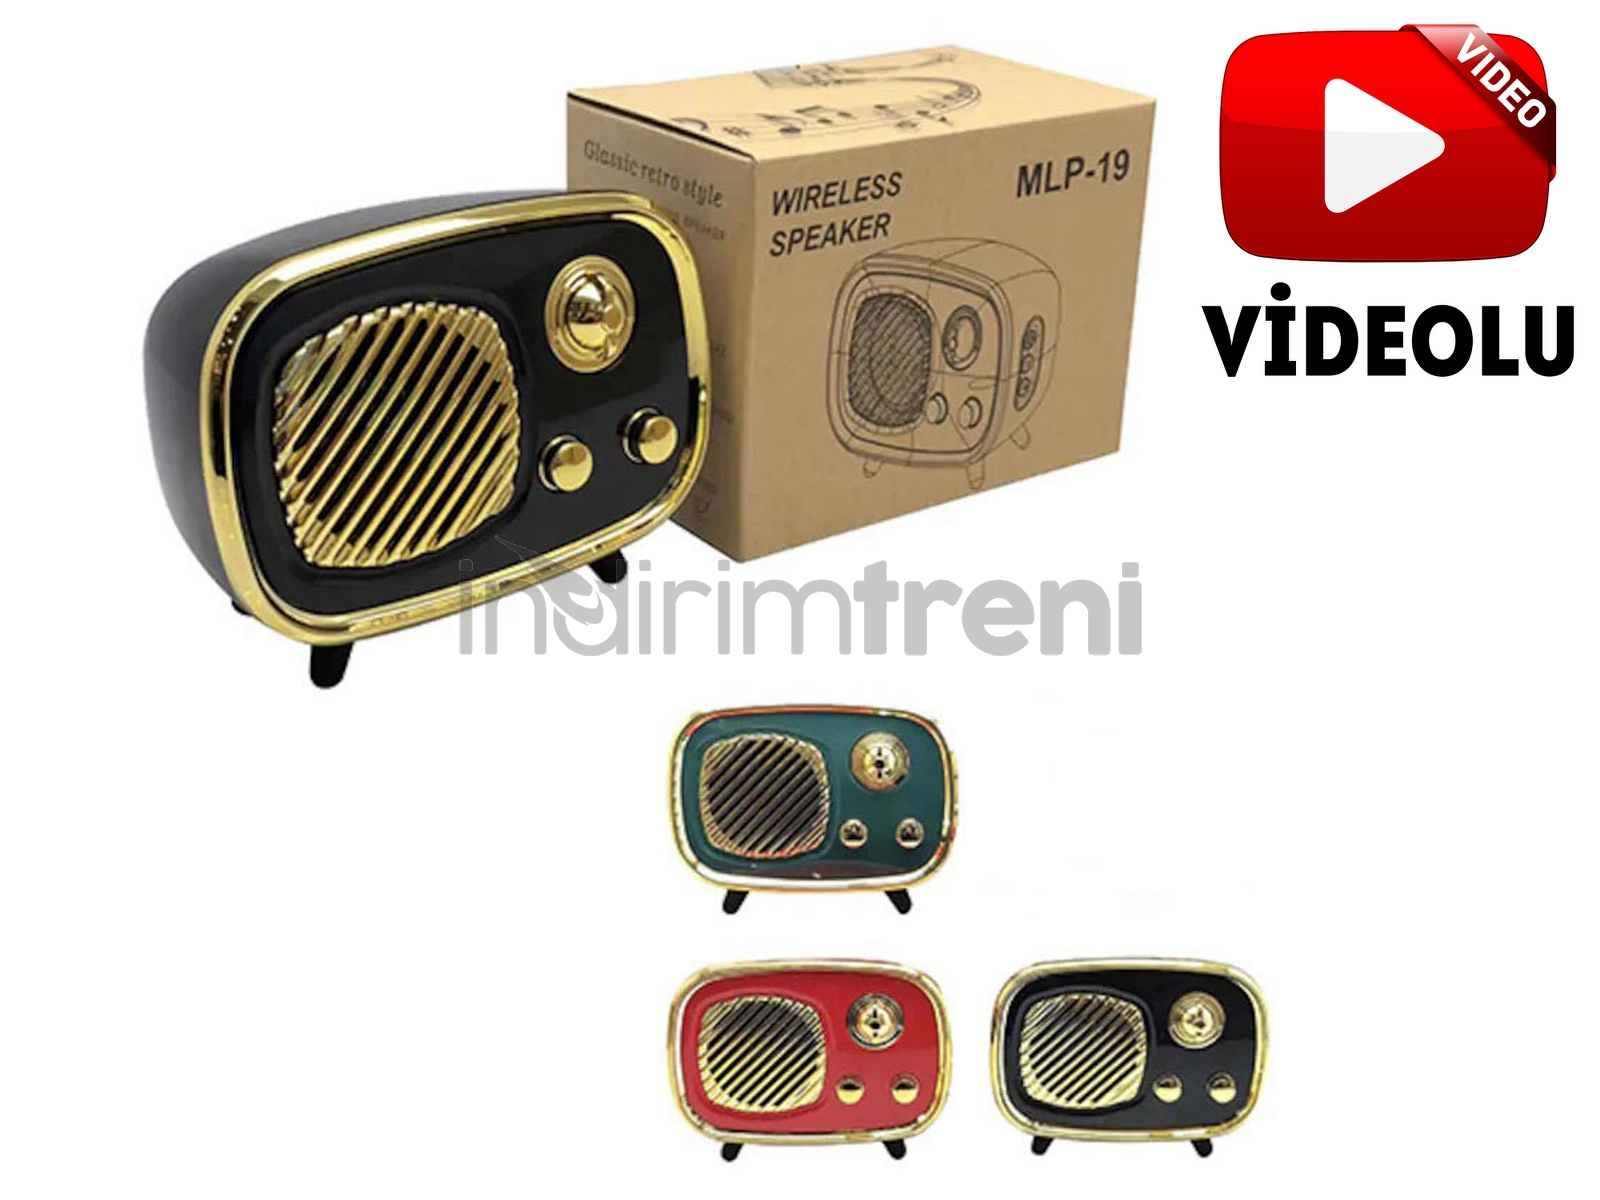 Retro Nostalji Mini Radyo Bluetooth Hoparlör